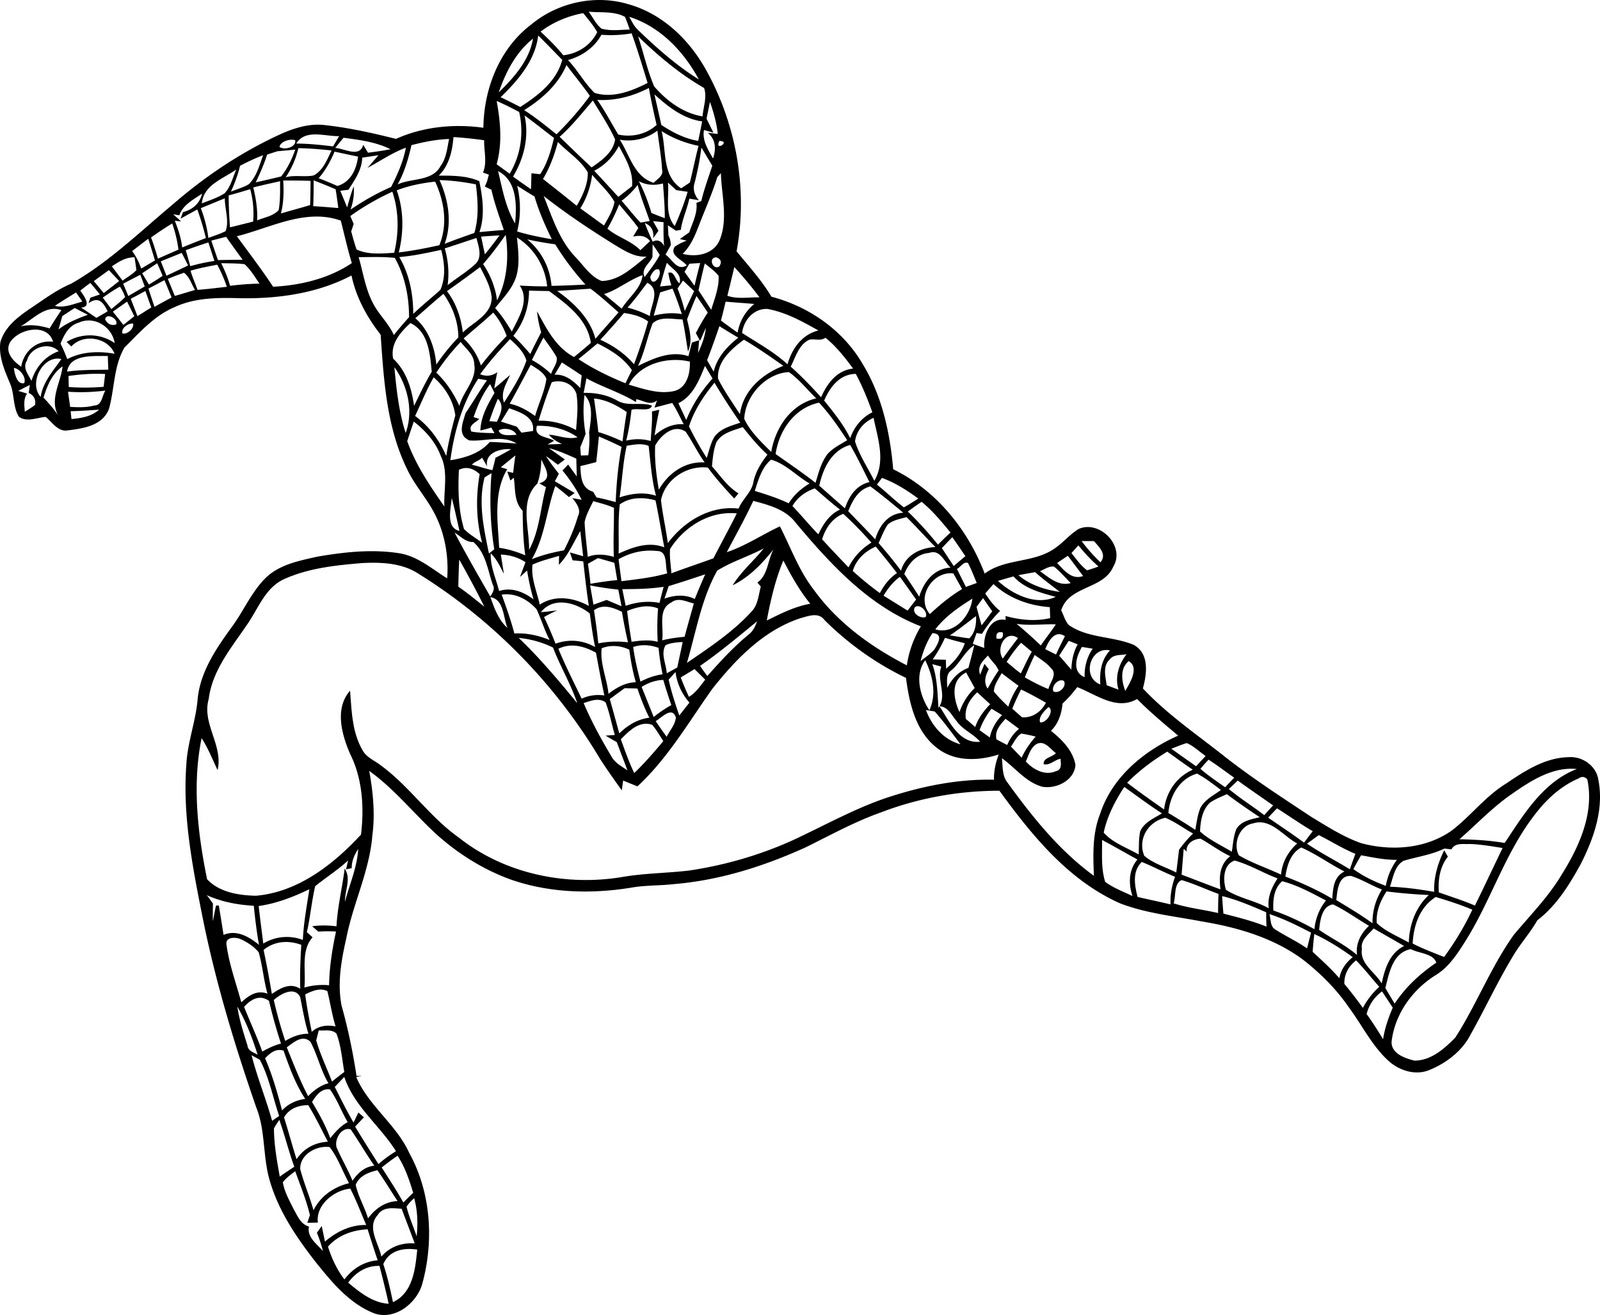 coloring spiderman color printable spiderman coloring pages at getdrawings free coloring color spiderman